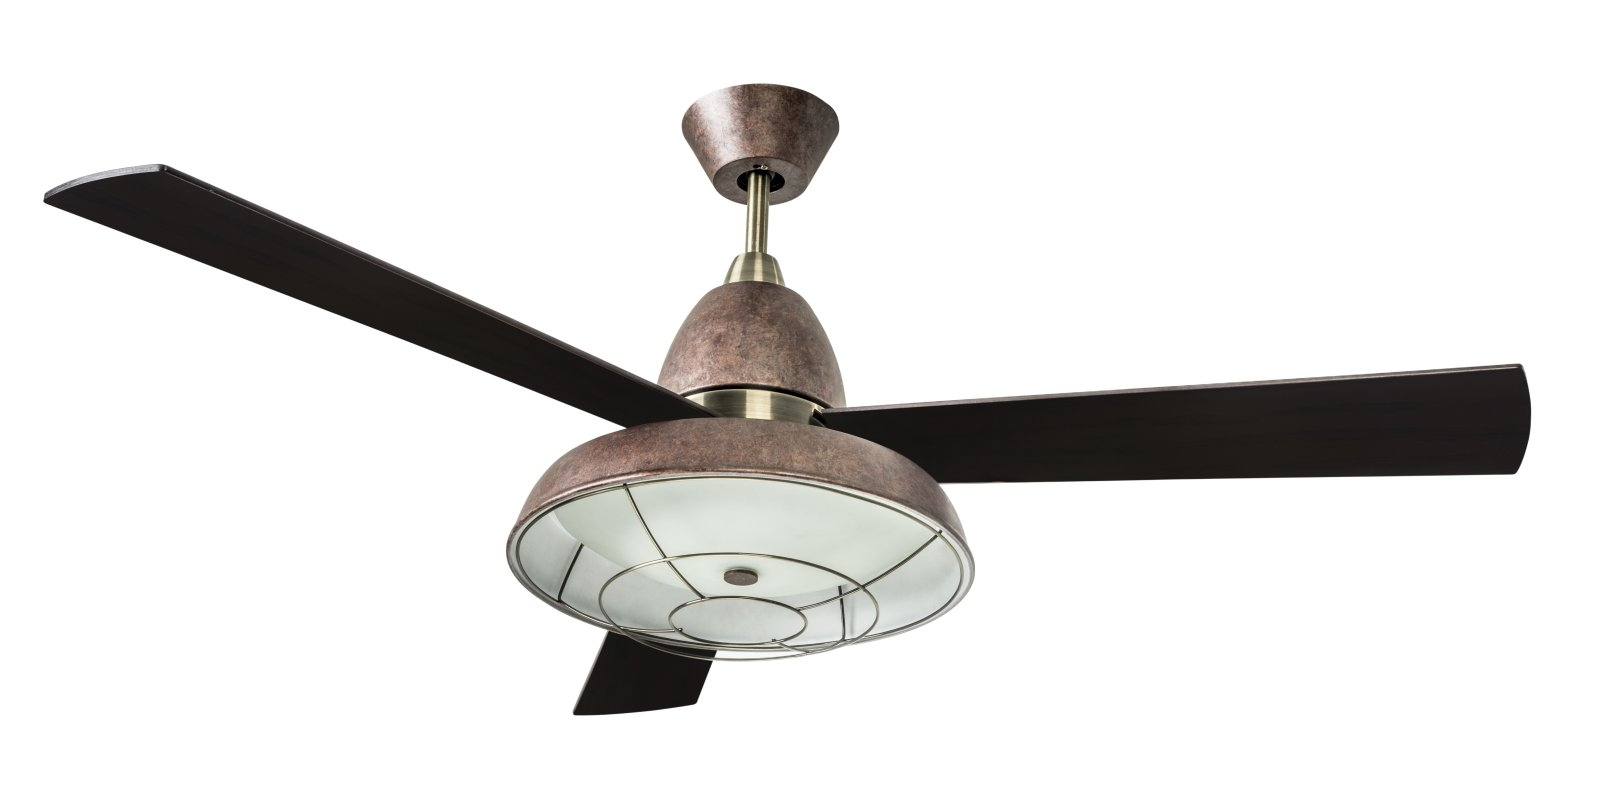 Chrome Ceiling Fans Without Lights Wanted Imagery